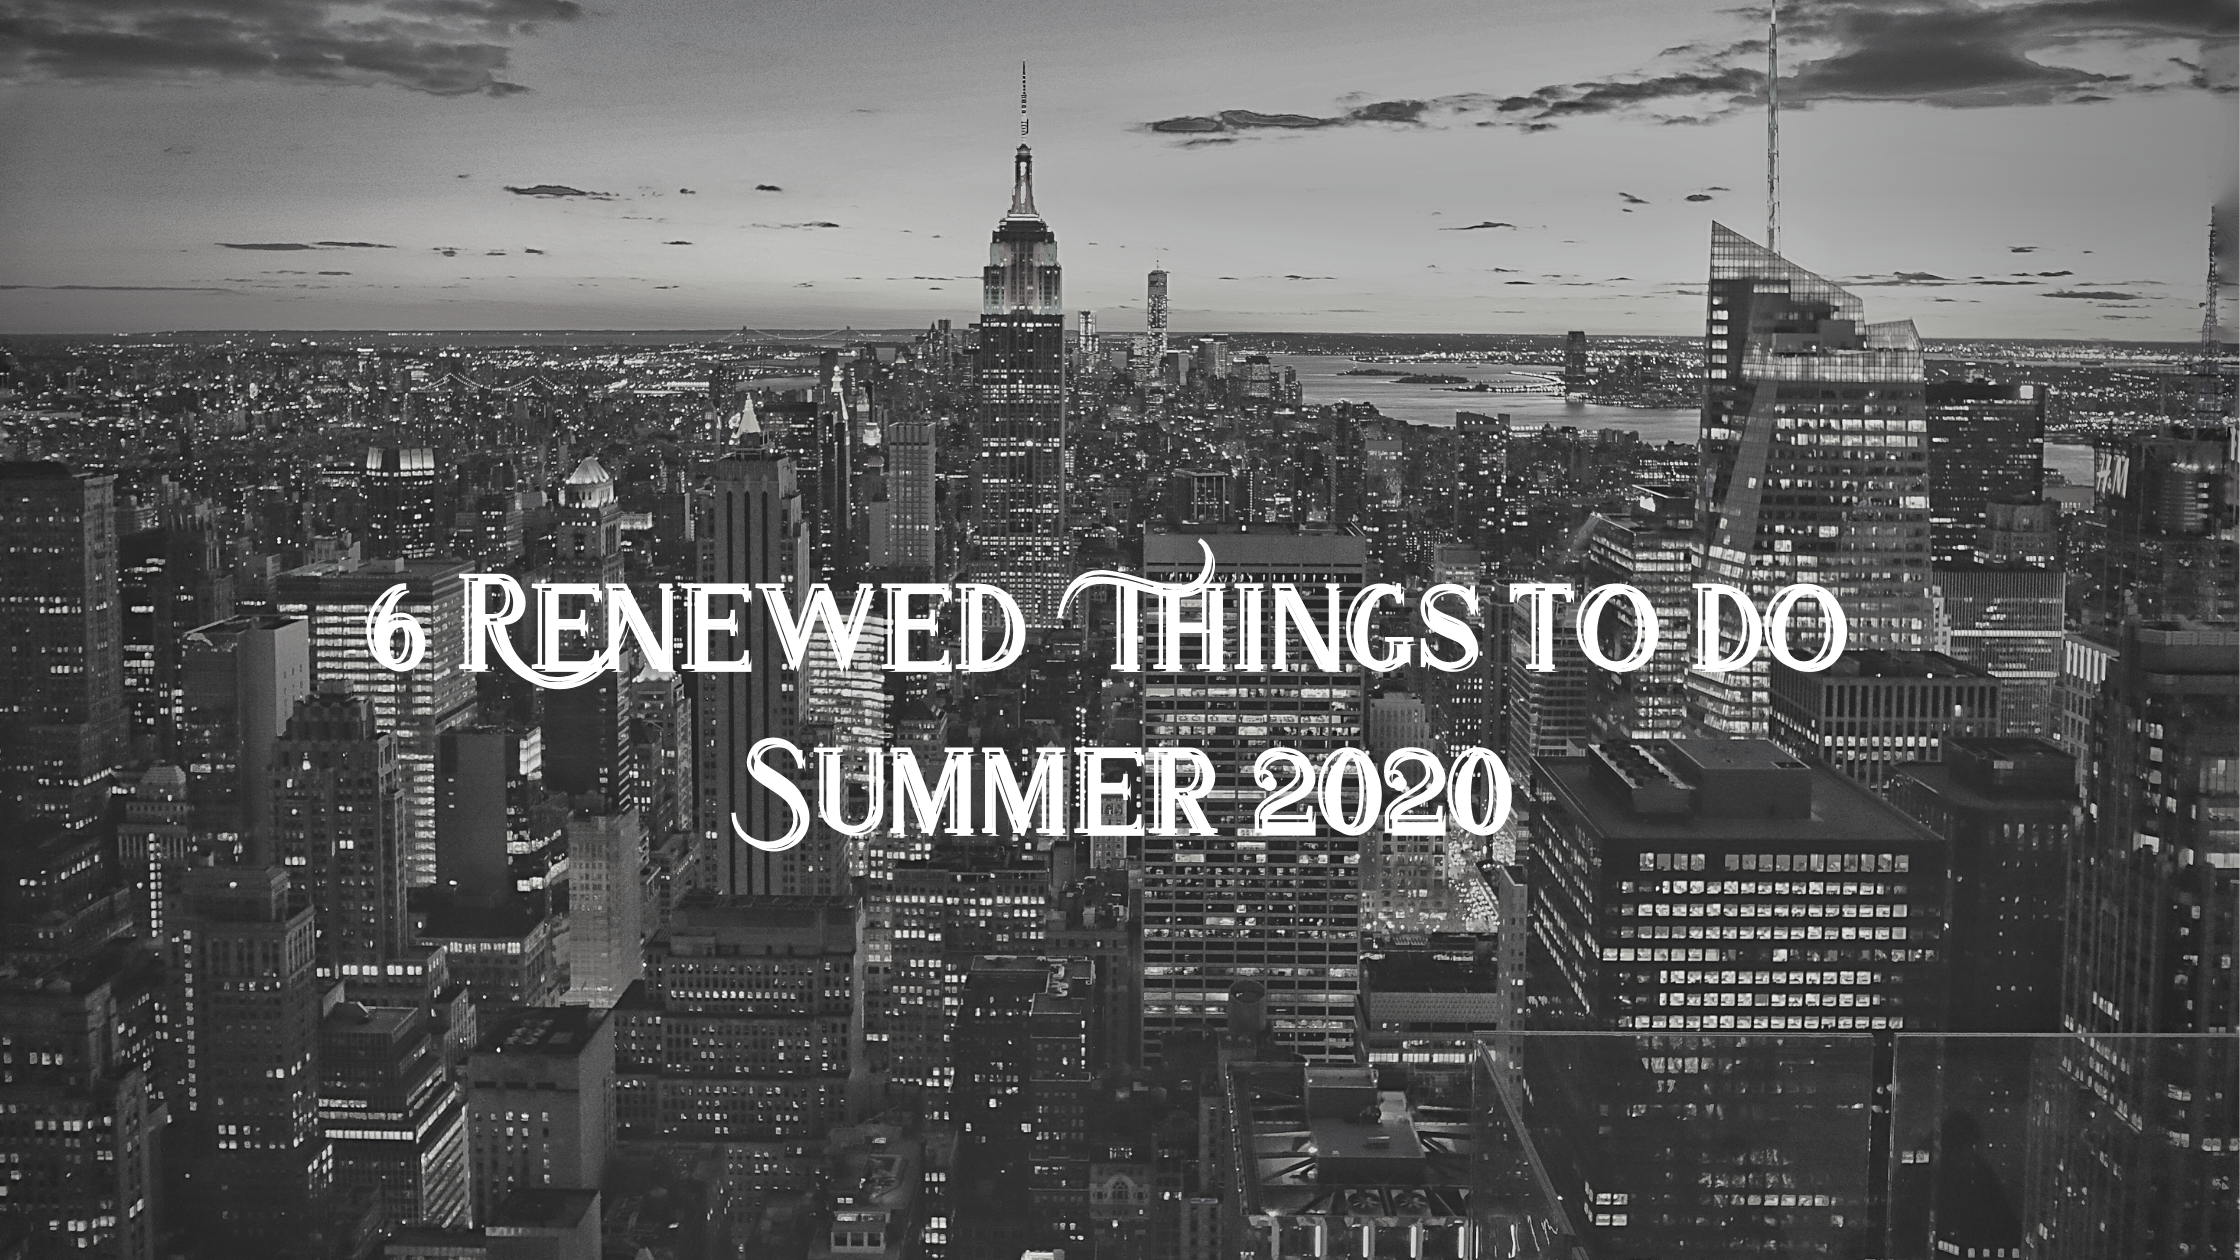 summer 2020 in NYC